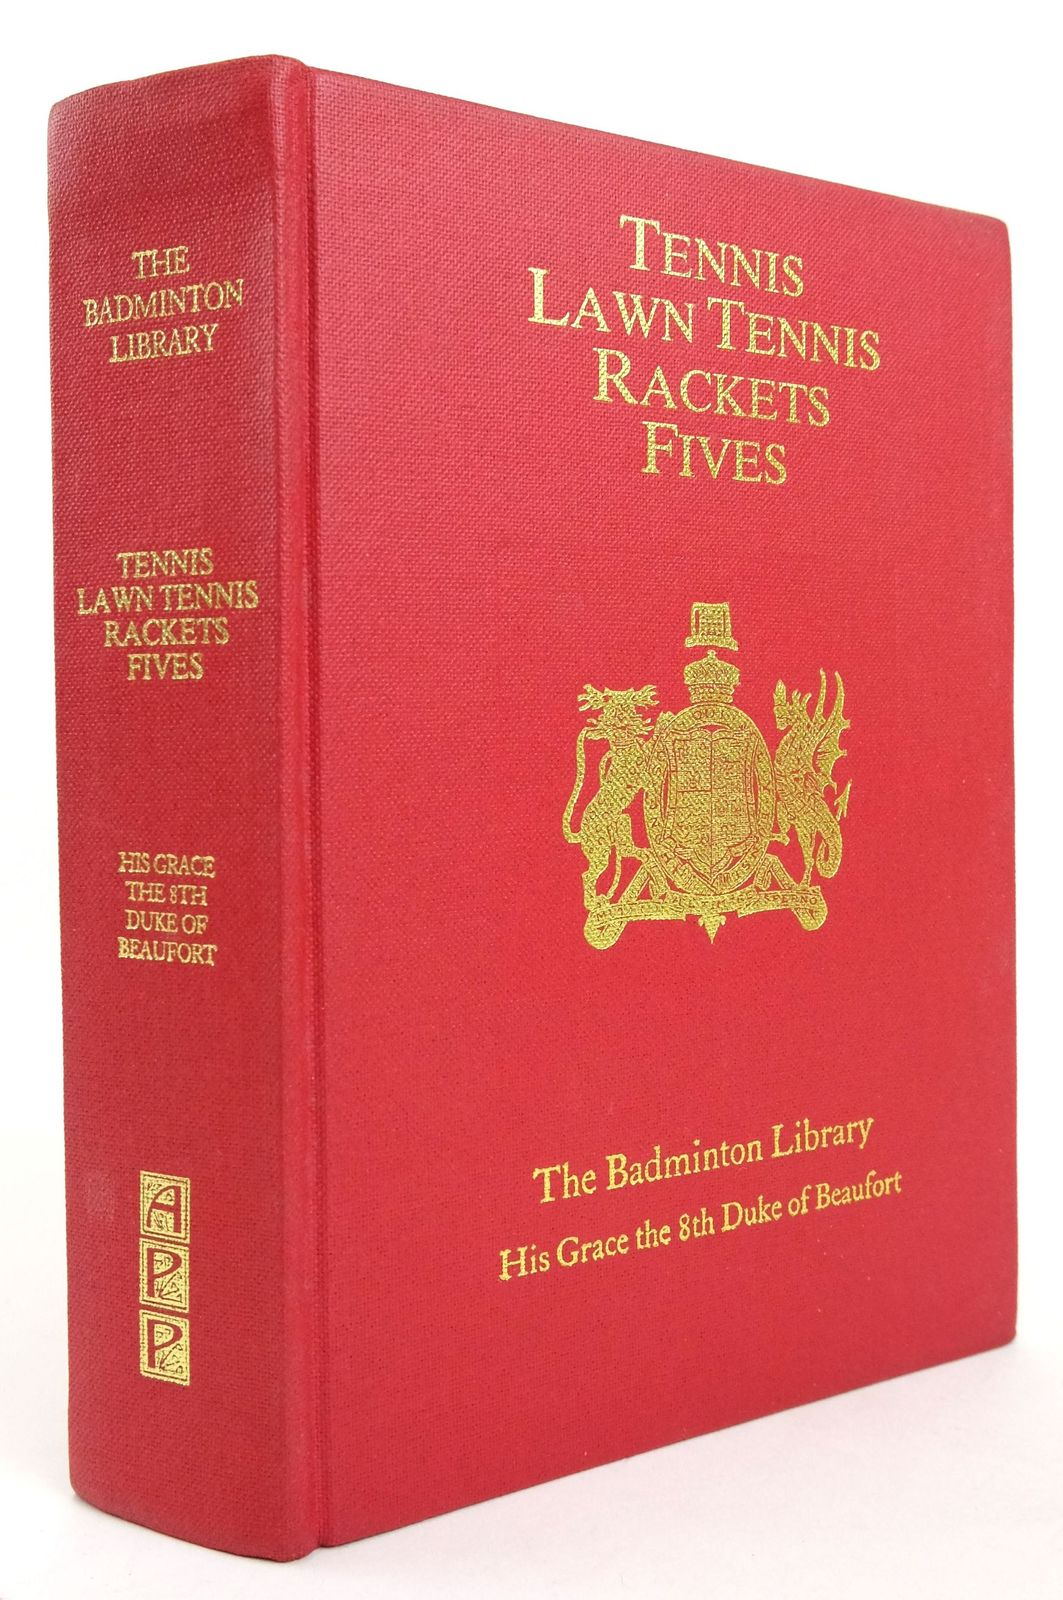 Photo of THE BADMINTON LIBRARY OF SPORTS AND PASTIMES - TENNIS: LAWN TENNIS, RACKETS: FIVES- Stock Number: 1820172